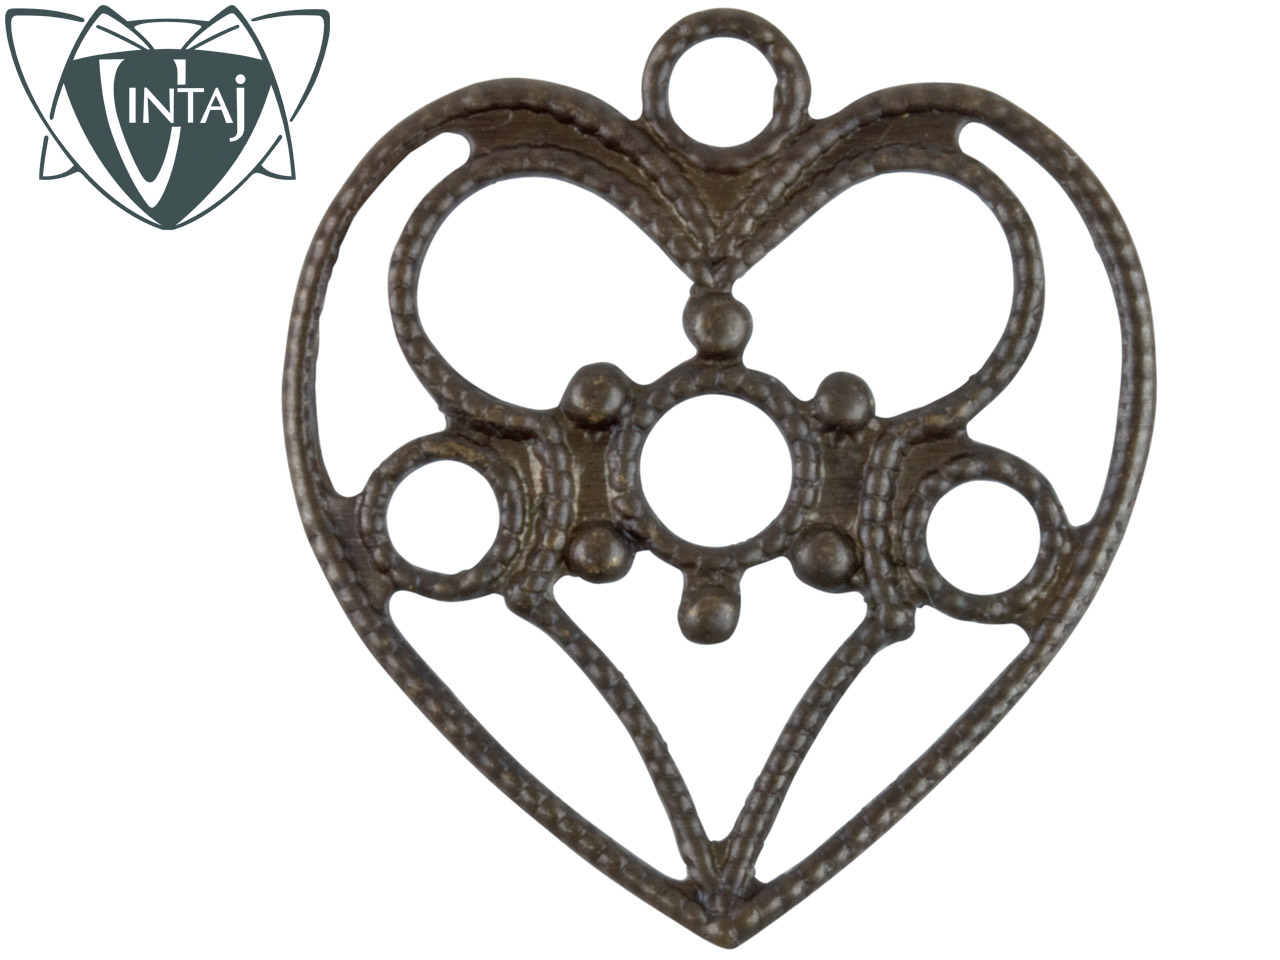 Vintaj Brass Delicate Heart,       Pack of 2